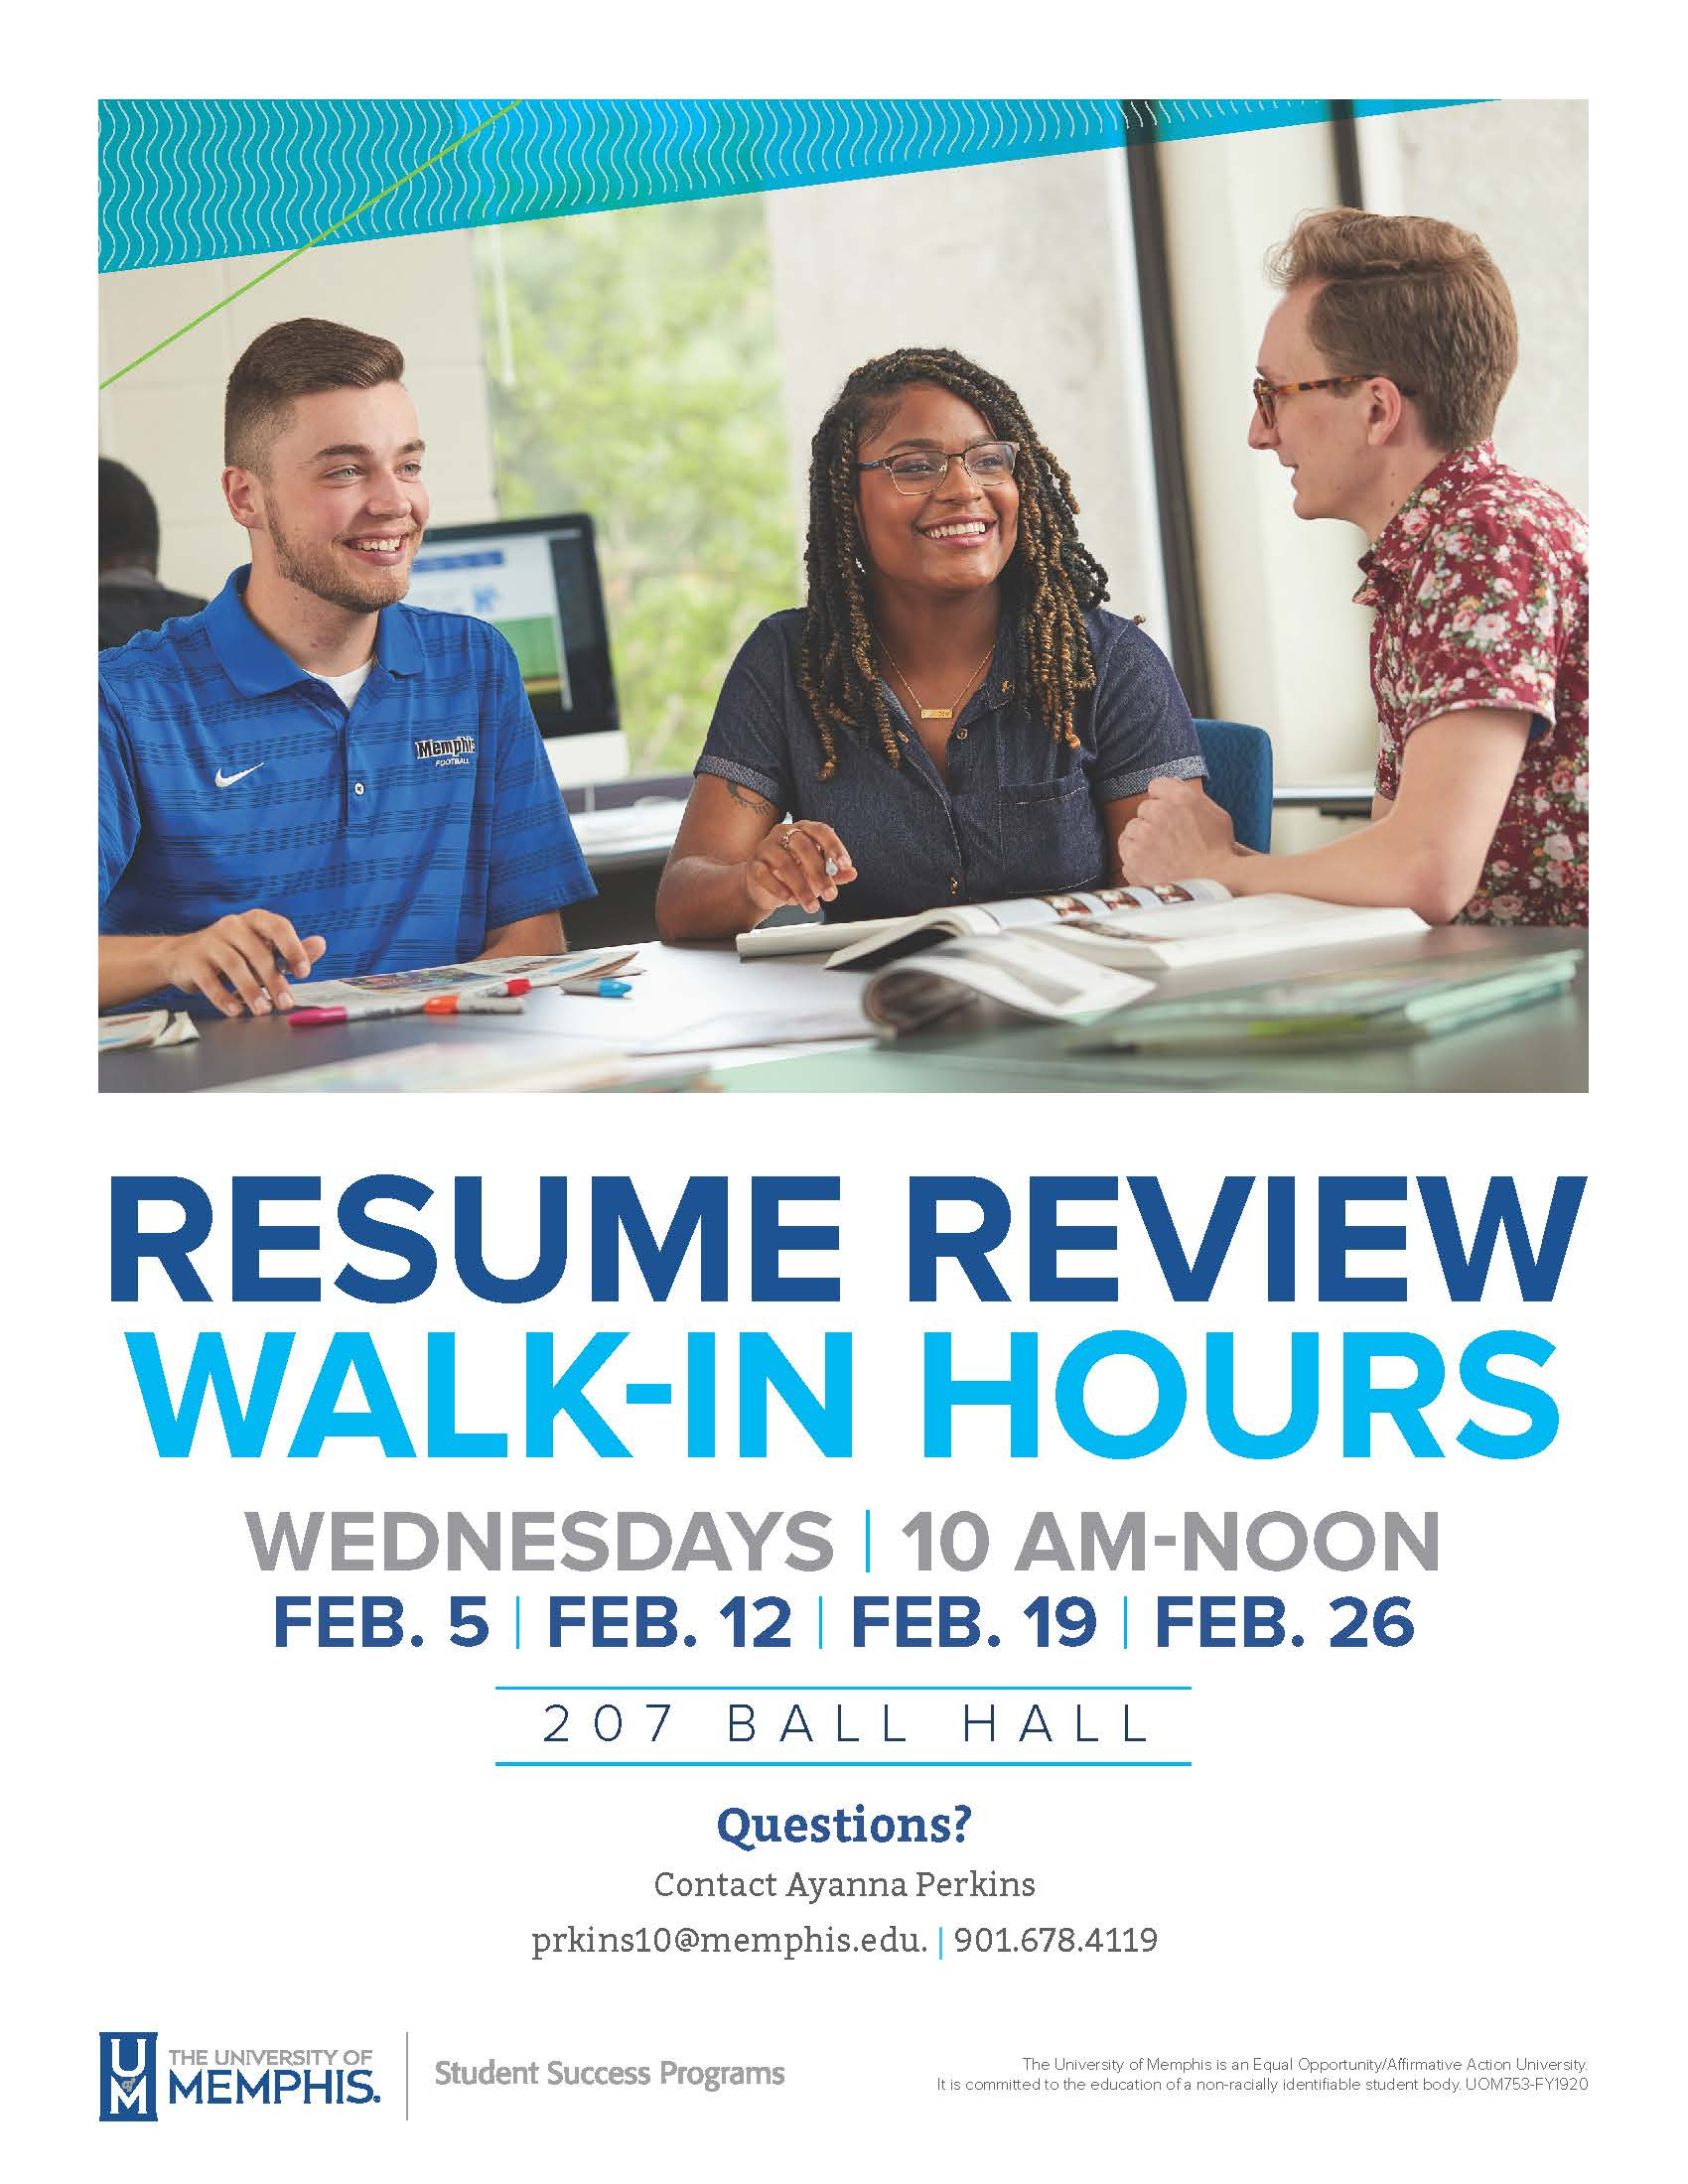 Resume Review Walk-in hours Wednesdays, 10am-noon. Feb 5, Feb 12, Feb 19, and Feb 26. 207 Ball Hall